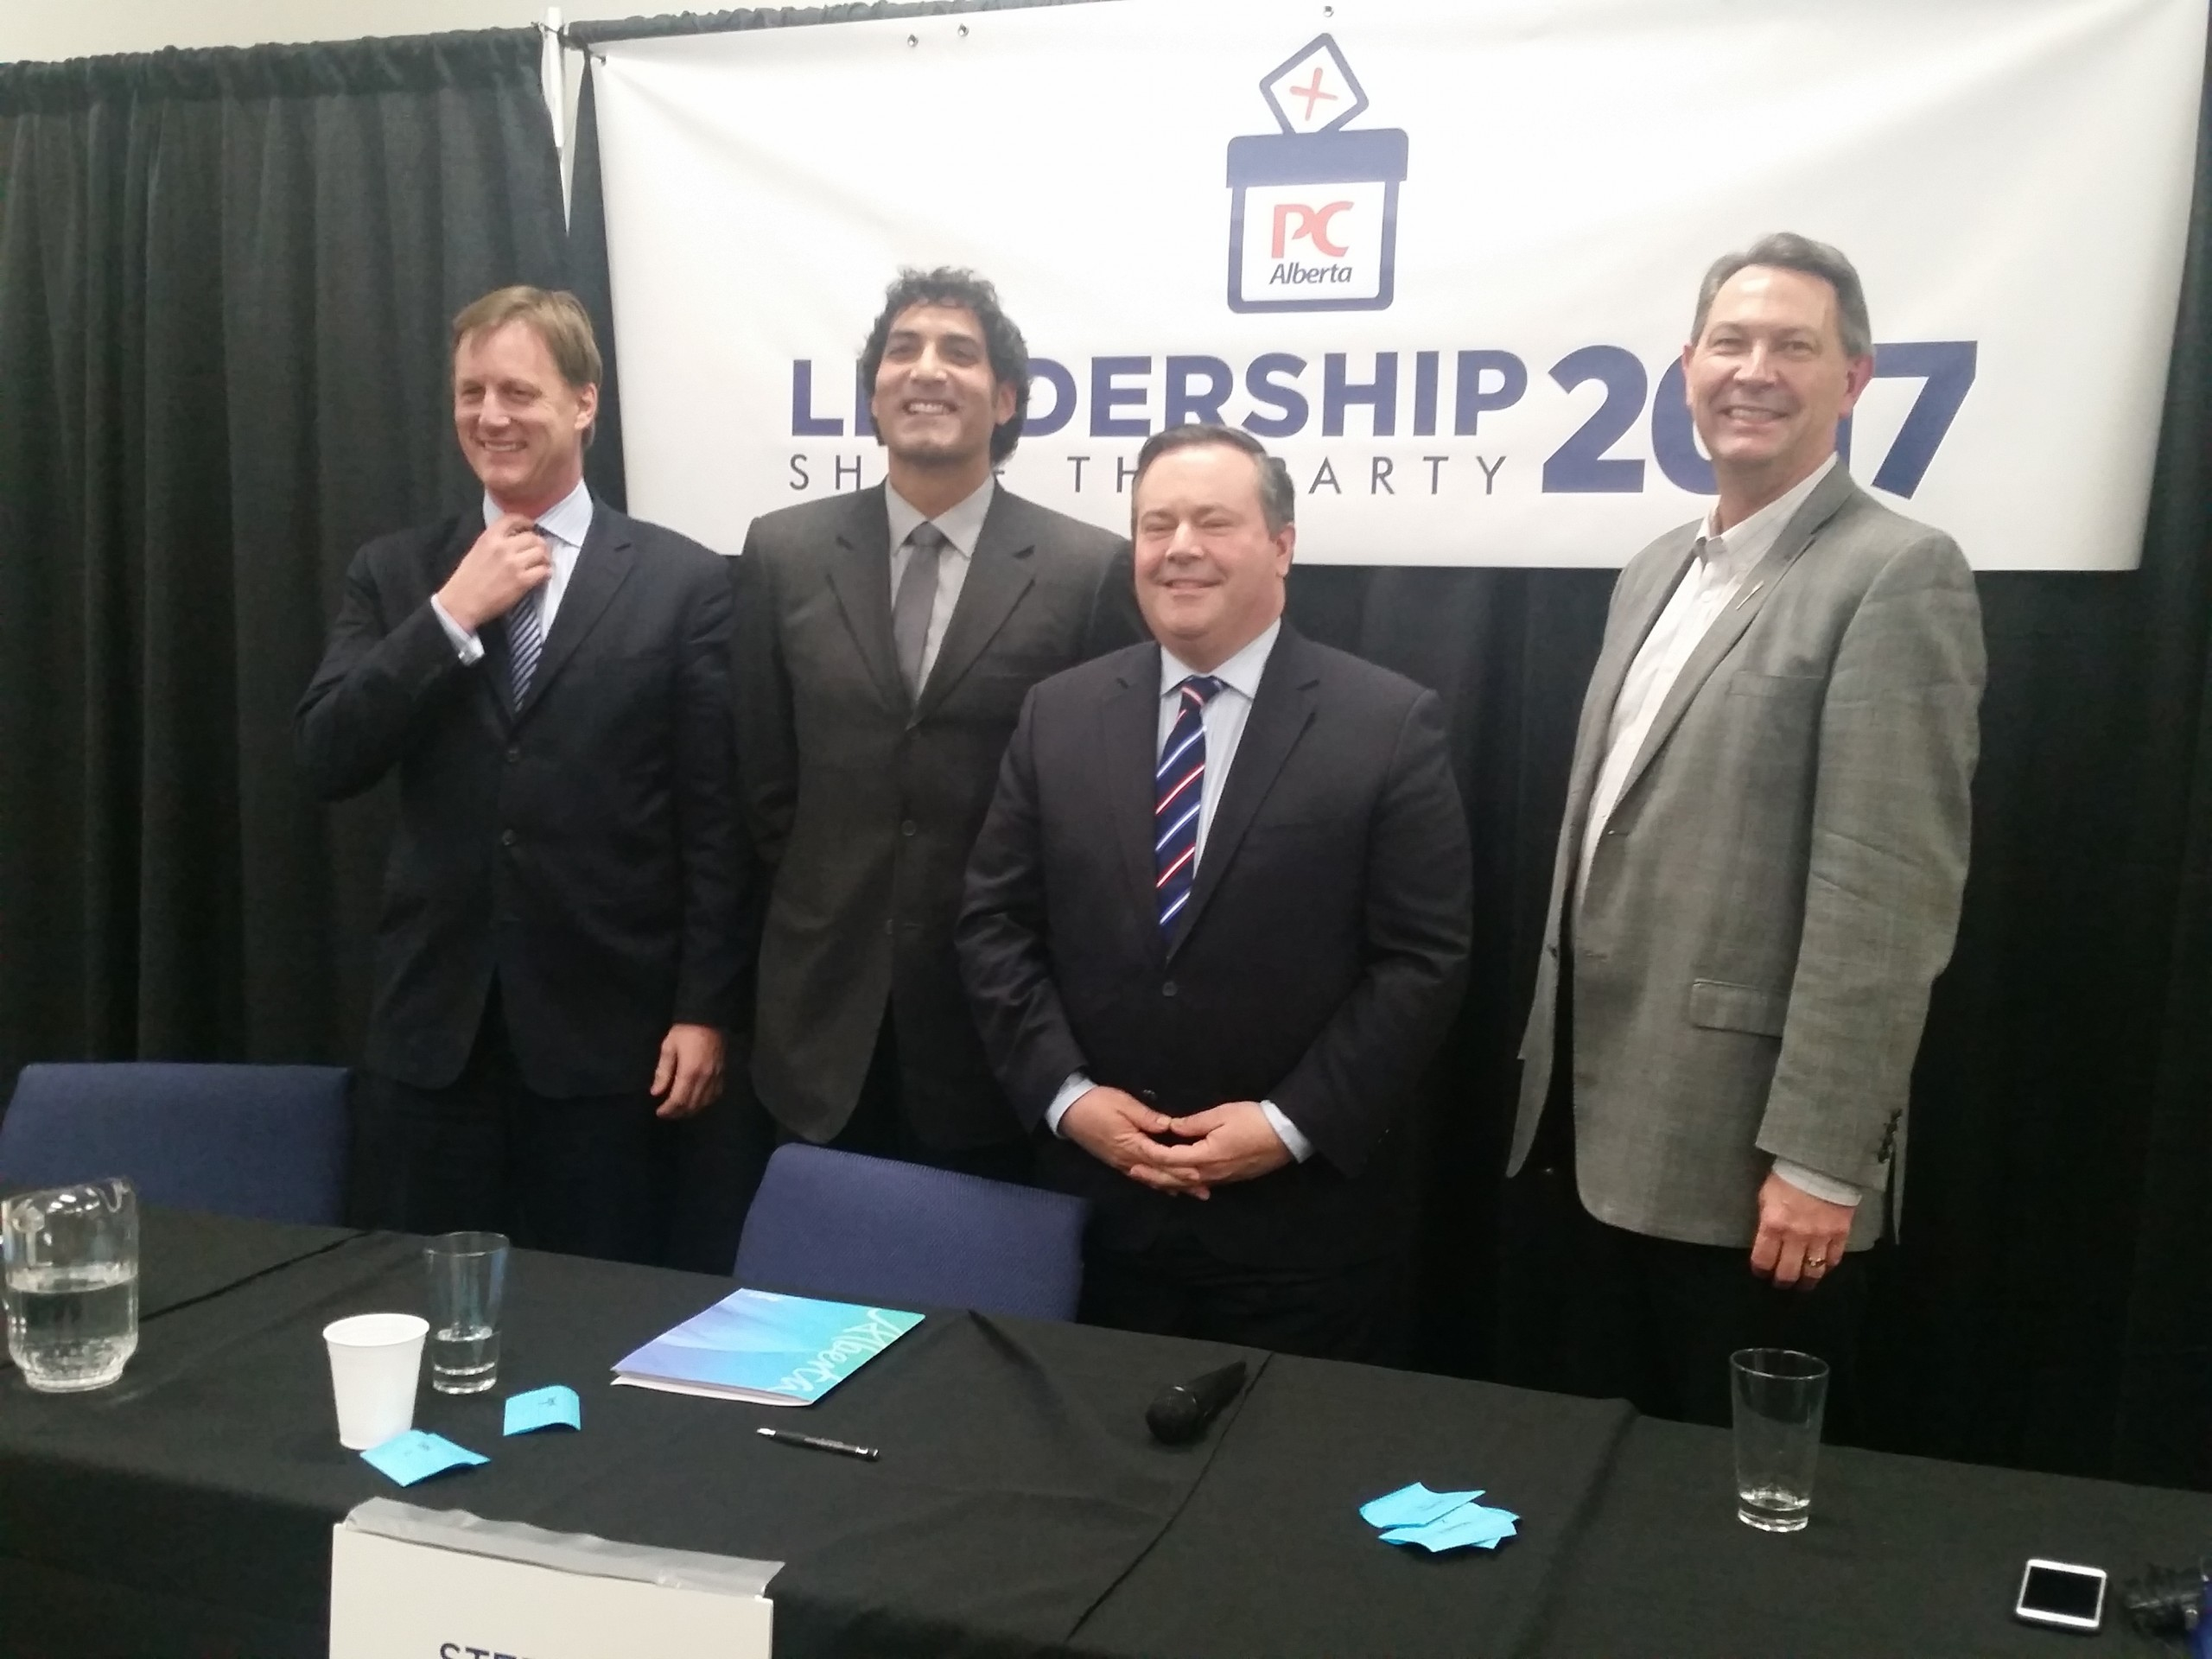 Energy Sector and Youth big talking points in PC Leadership Townhall